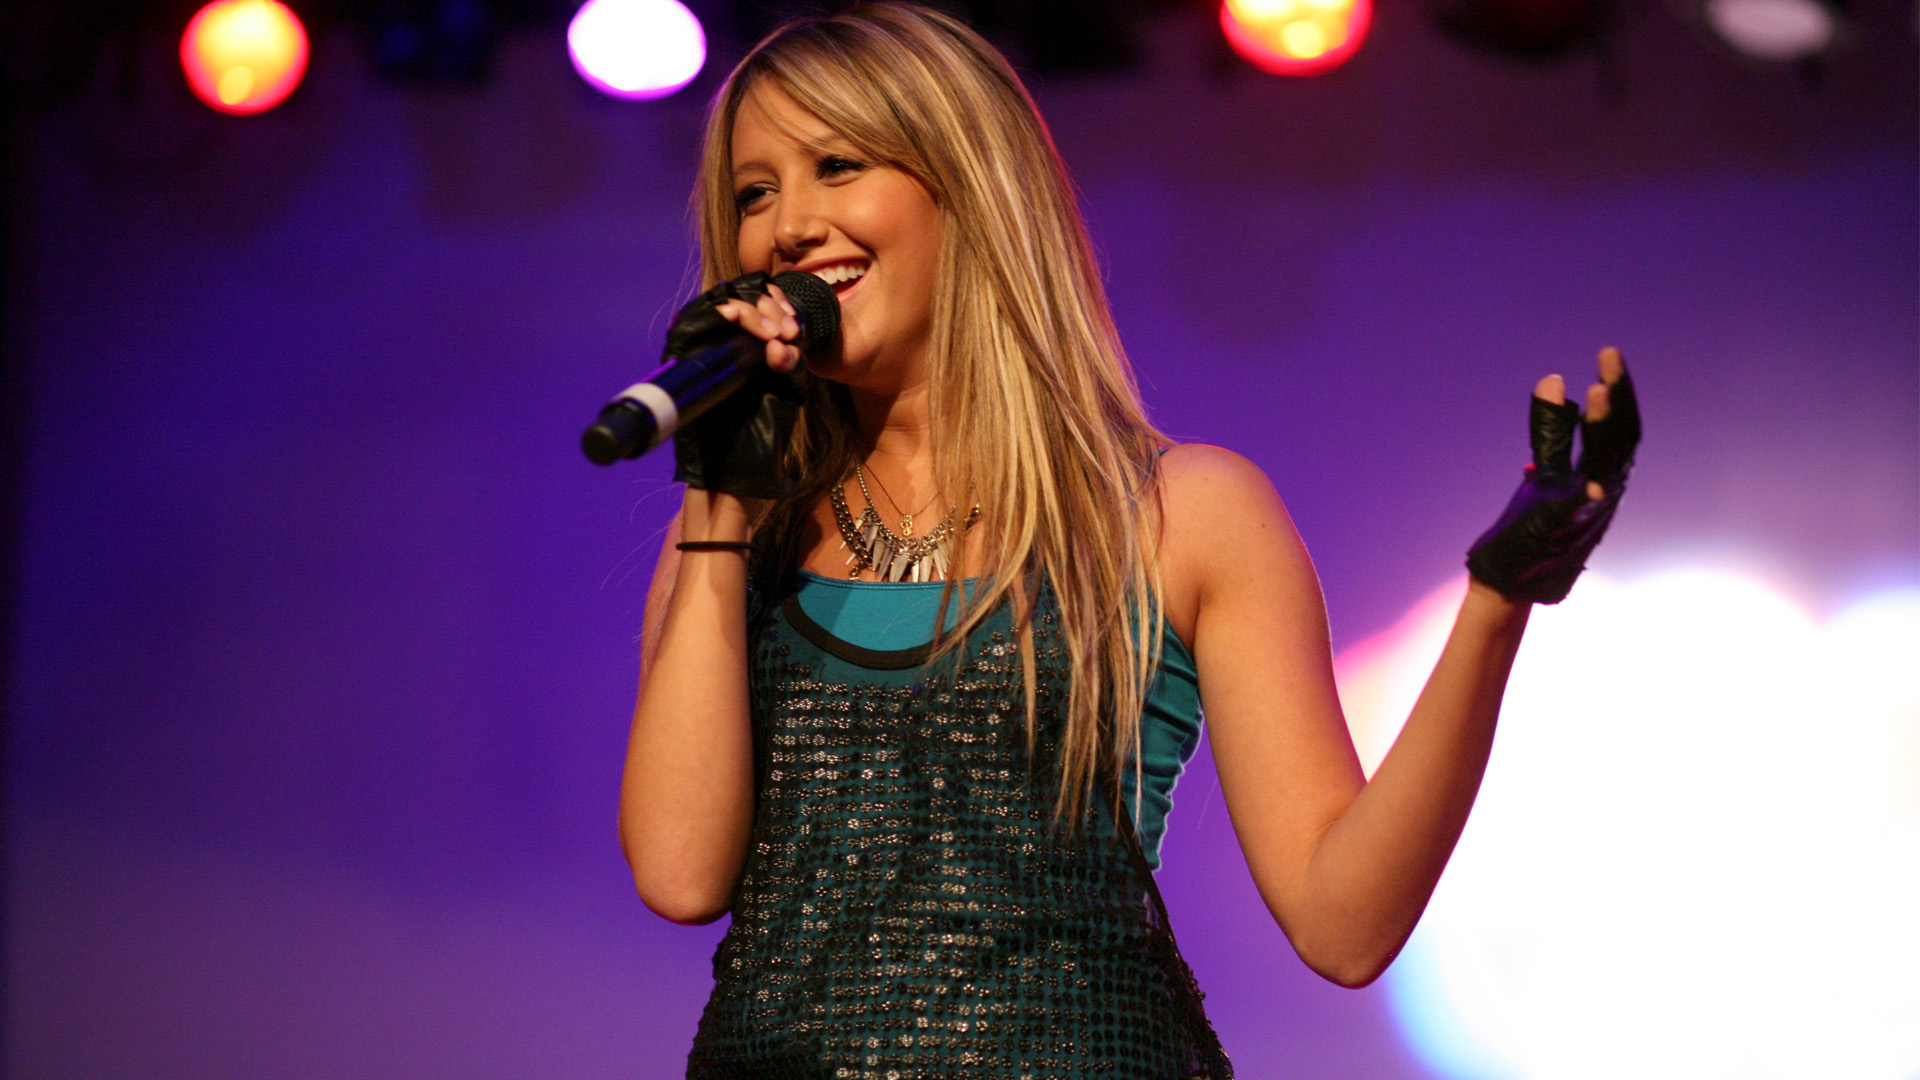 Ashley Tisdale Singing HDTV